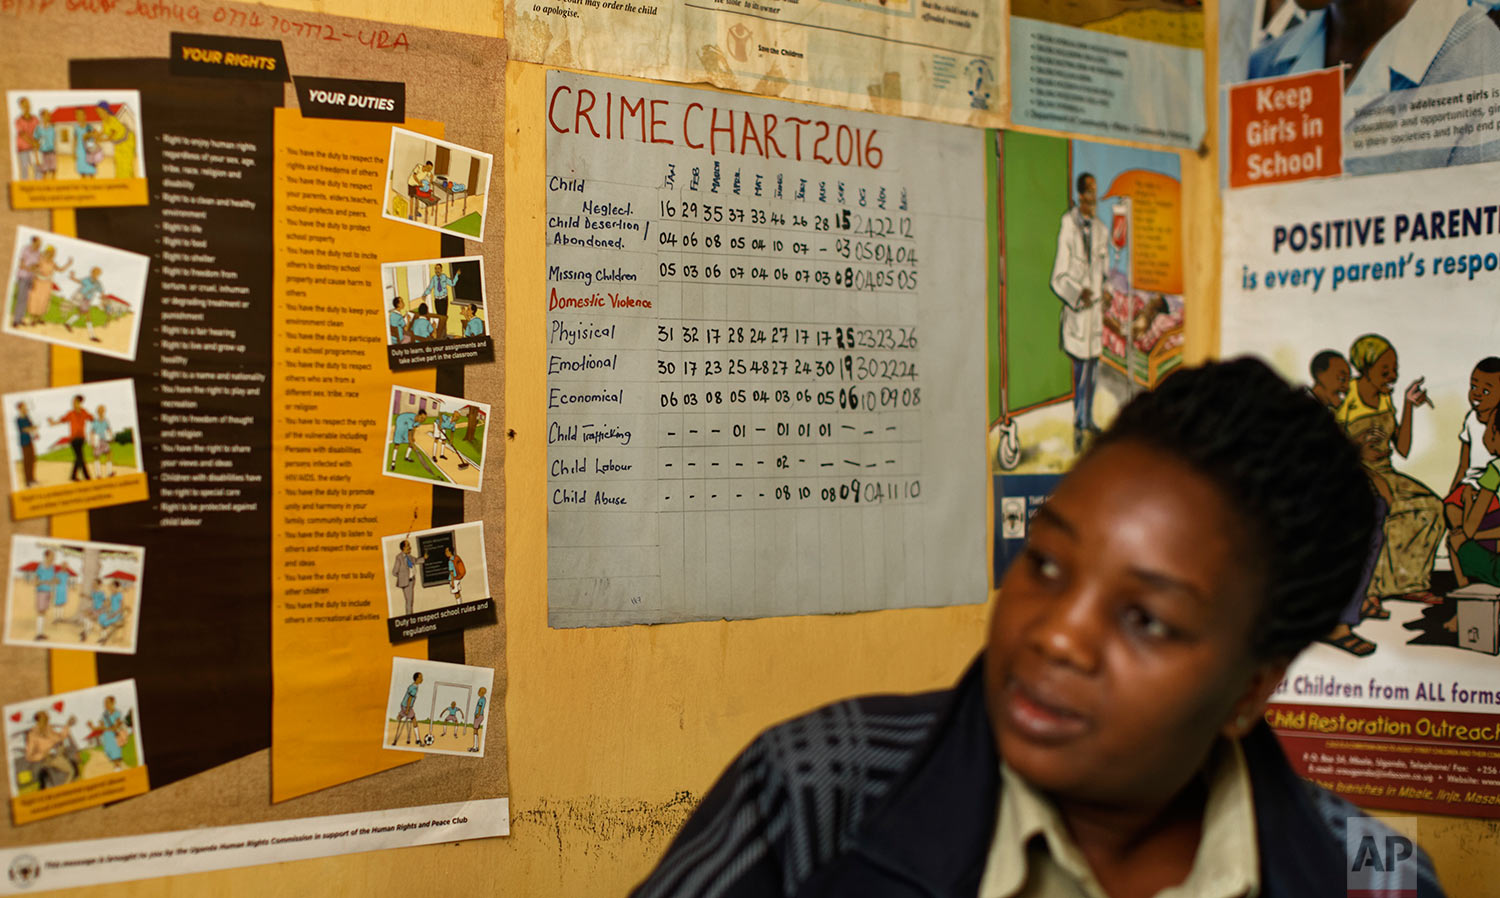 In this Tuesday, May 30, 2017 photo, the previous year's crime chart showing the monthly figures of different types of crime affecting women and children in the area hangs on the wall in the office of police child protection officer Natuhwera Donum in Masaka, Uganda. (AP Photo/Ben Curtis)